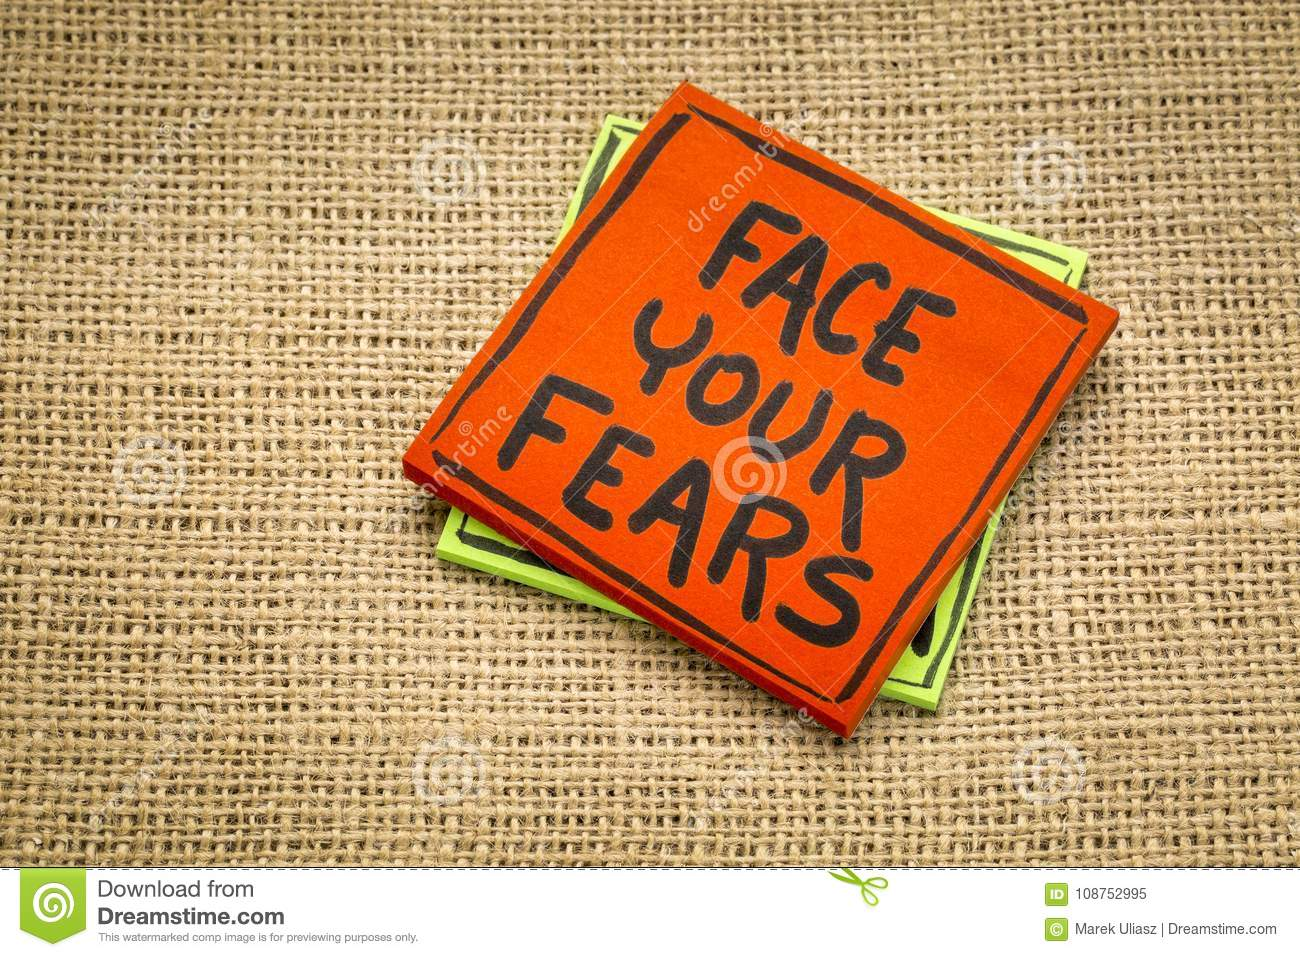 Face your fears reminder note